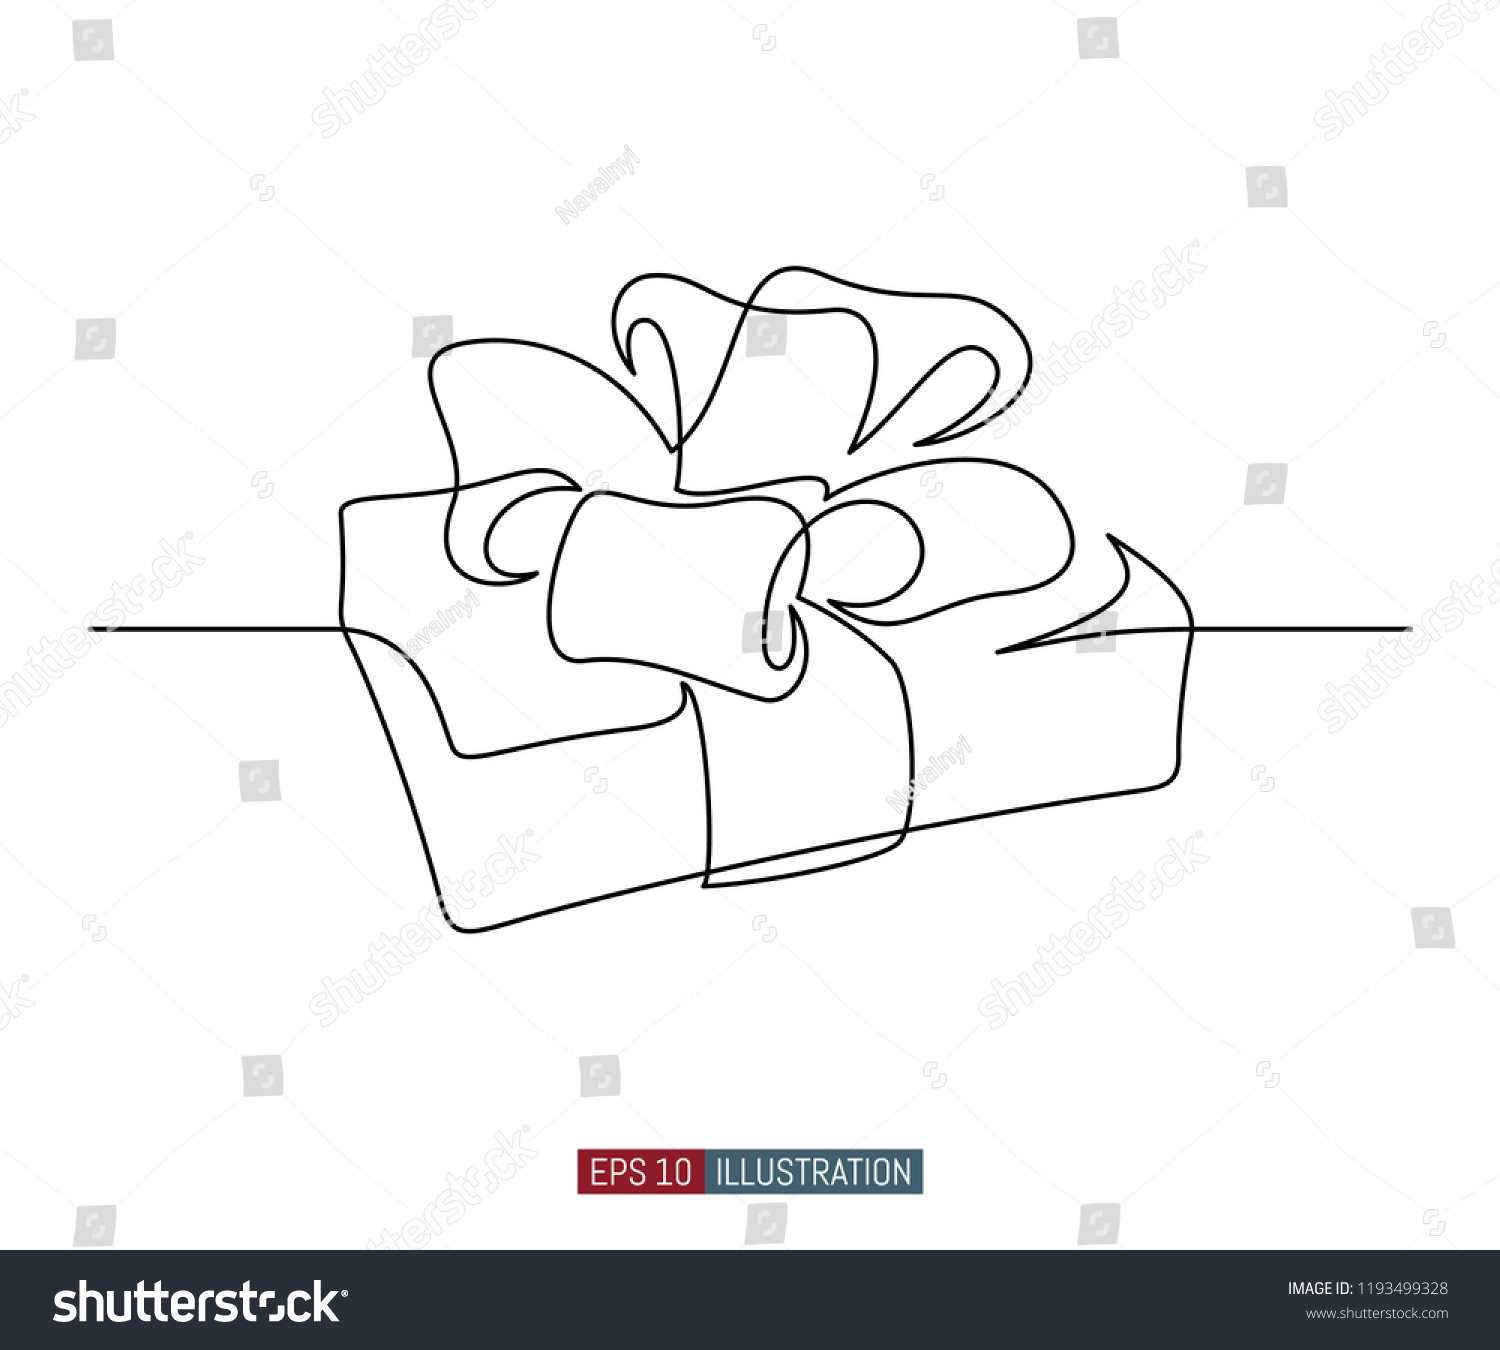 Continuous Line Drawing Of Gift Box With Ribbon Bow Template For Your Design Works